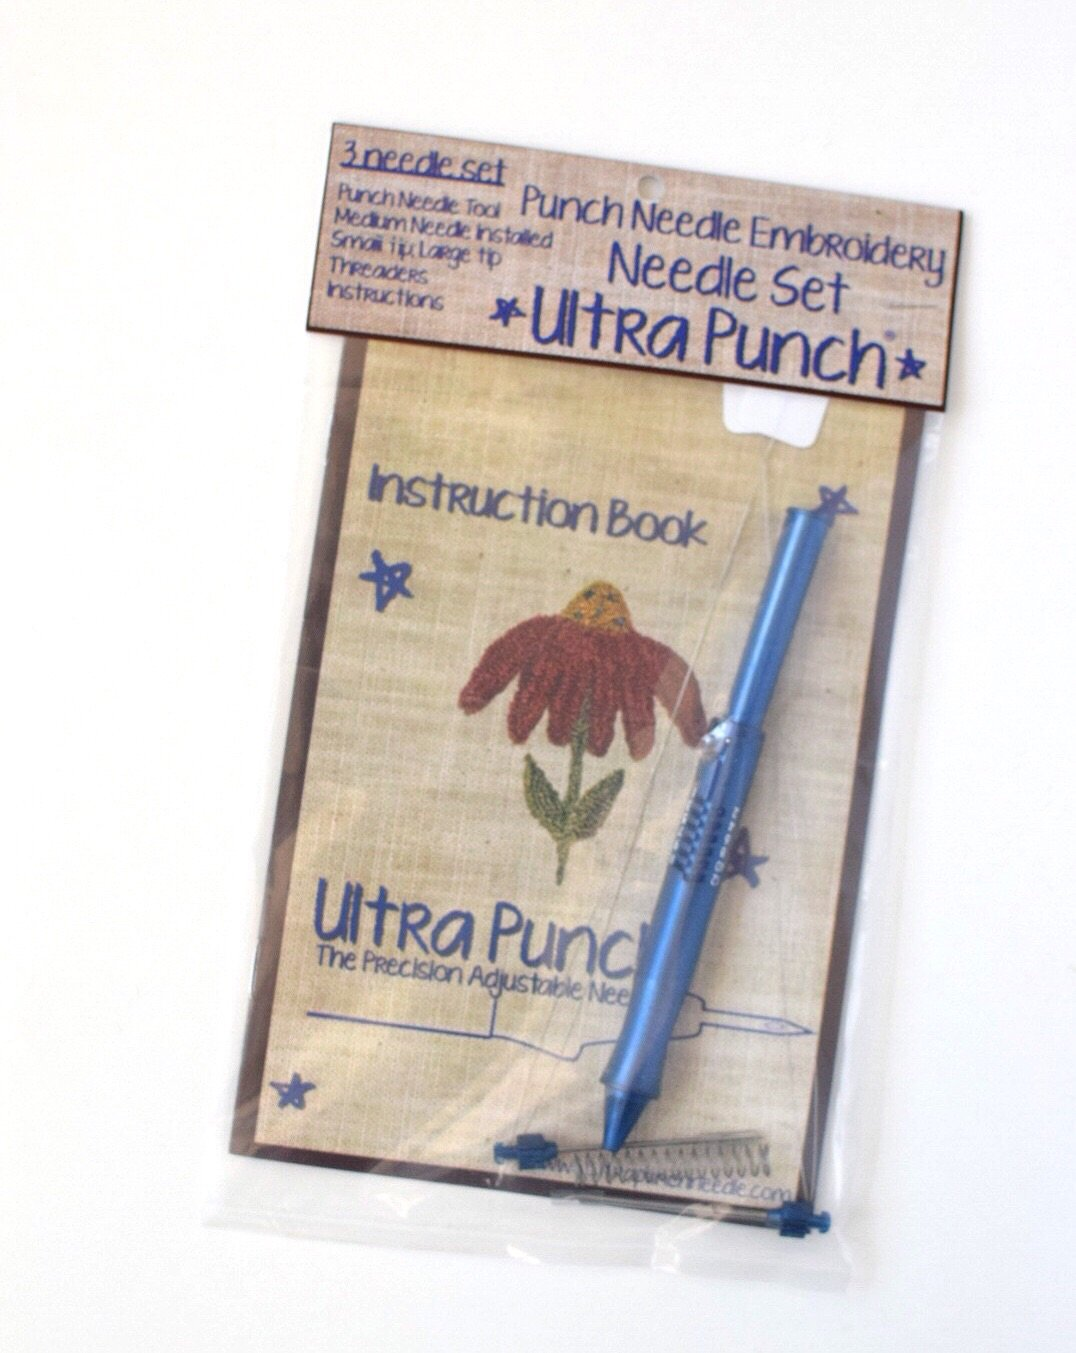 Ultrapunch needle